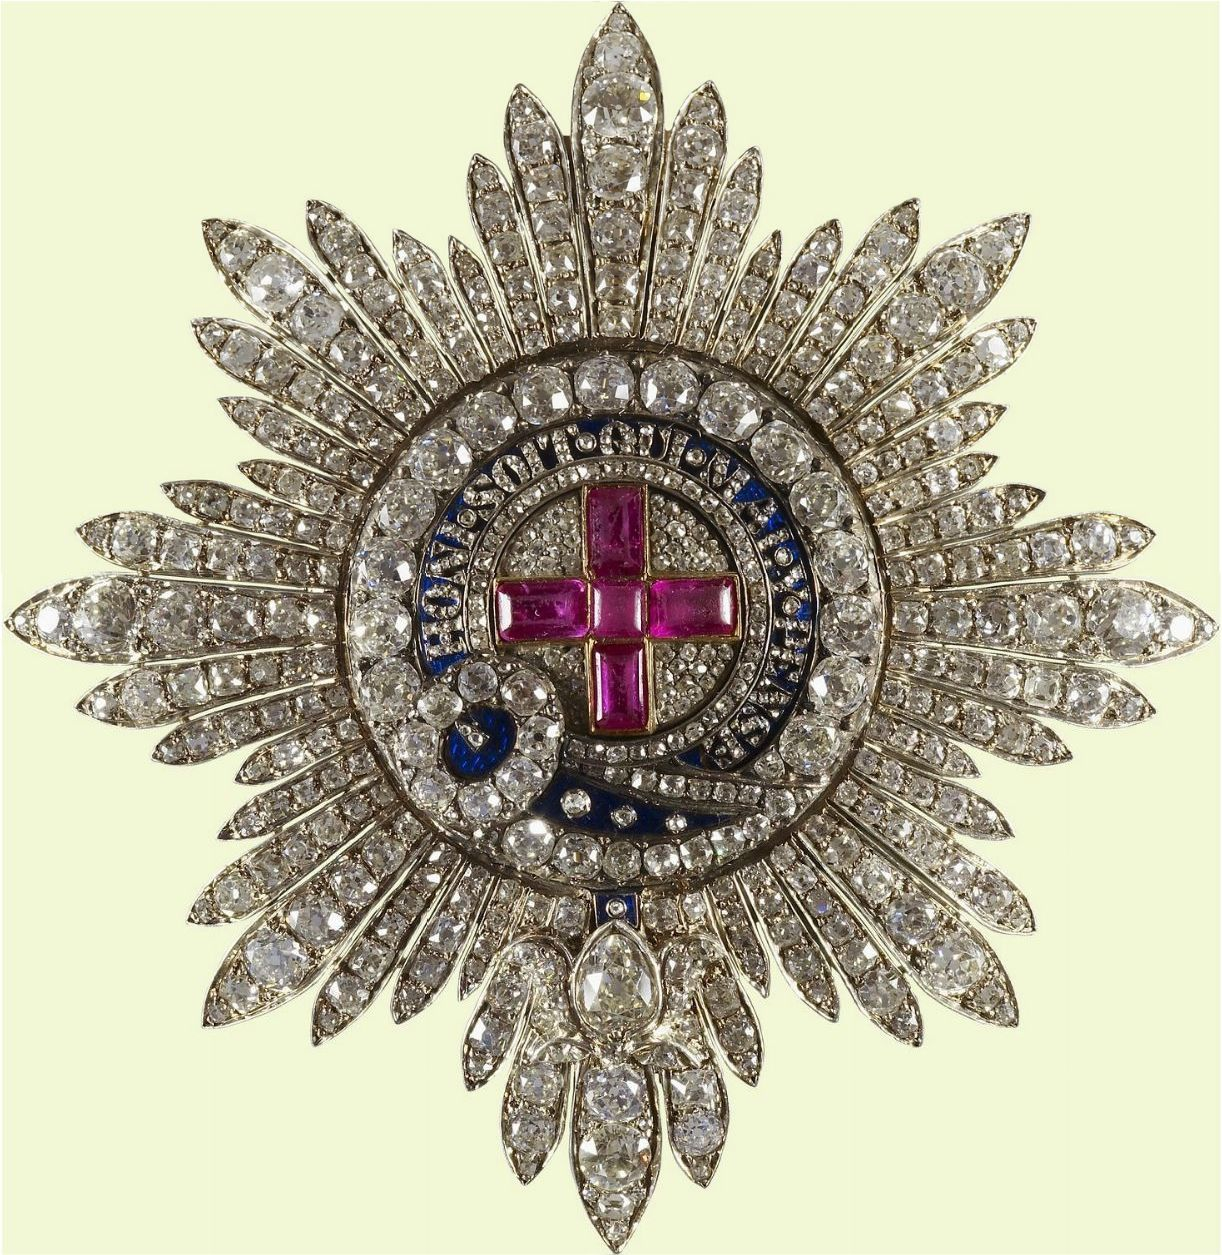 Royal Jewels Of The World Message Board Jewelled Garter Stars In The British Royal Collections Royal Jewelry Royal Jewels Royal Crown Jewels